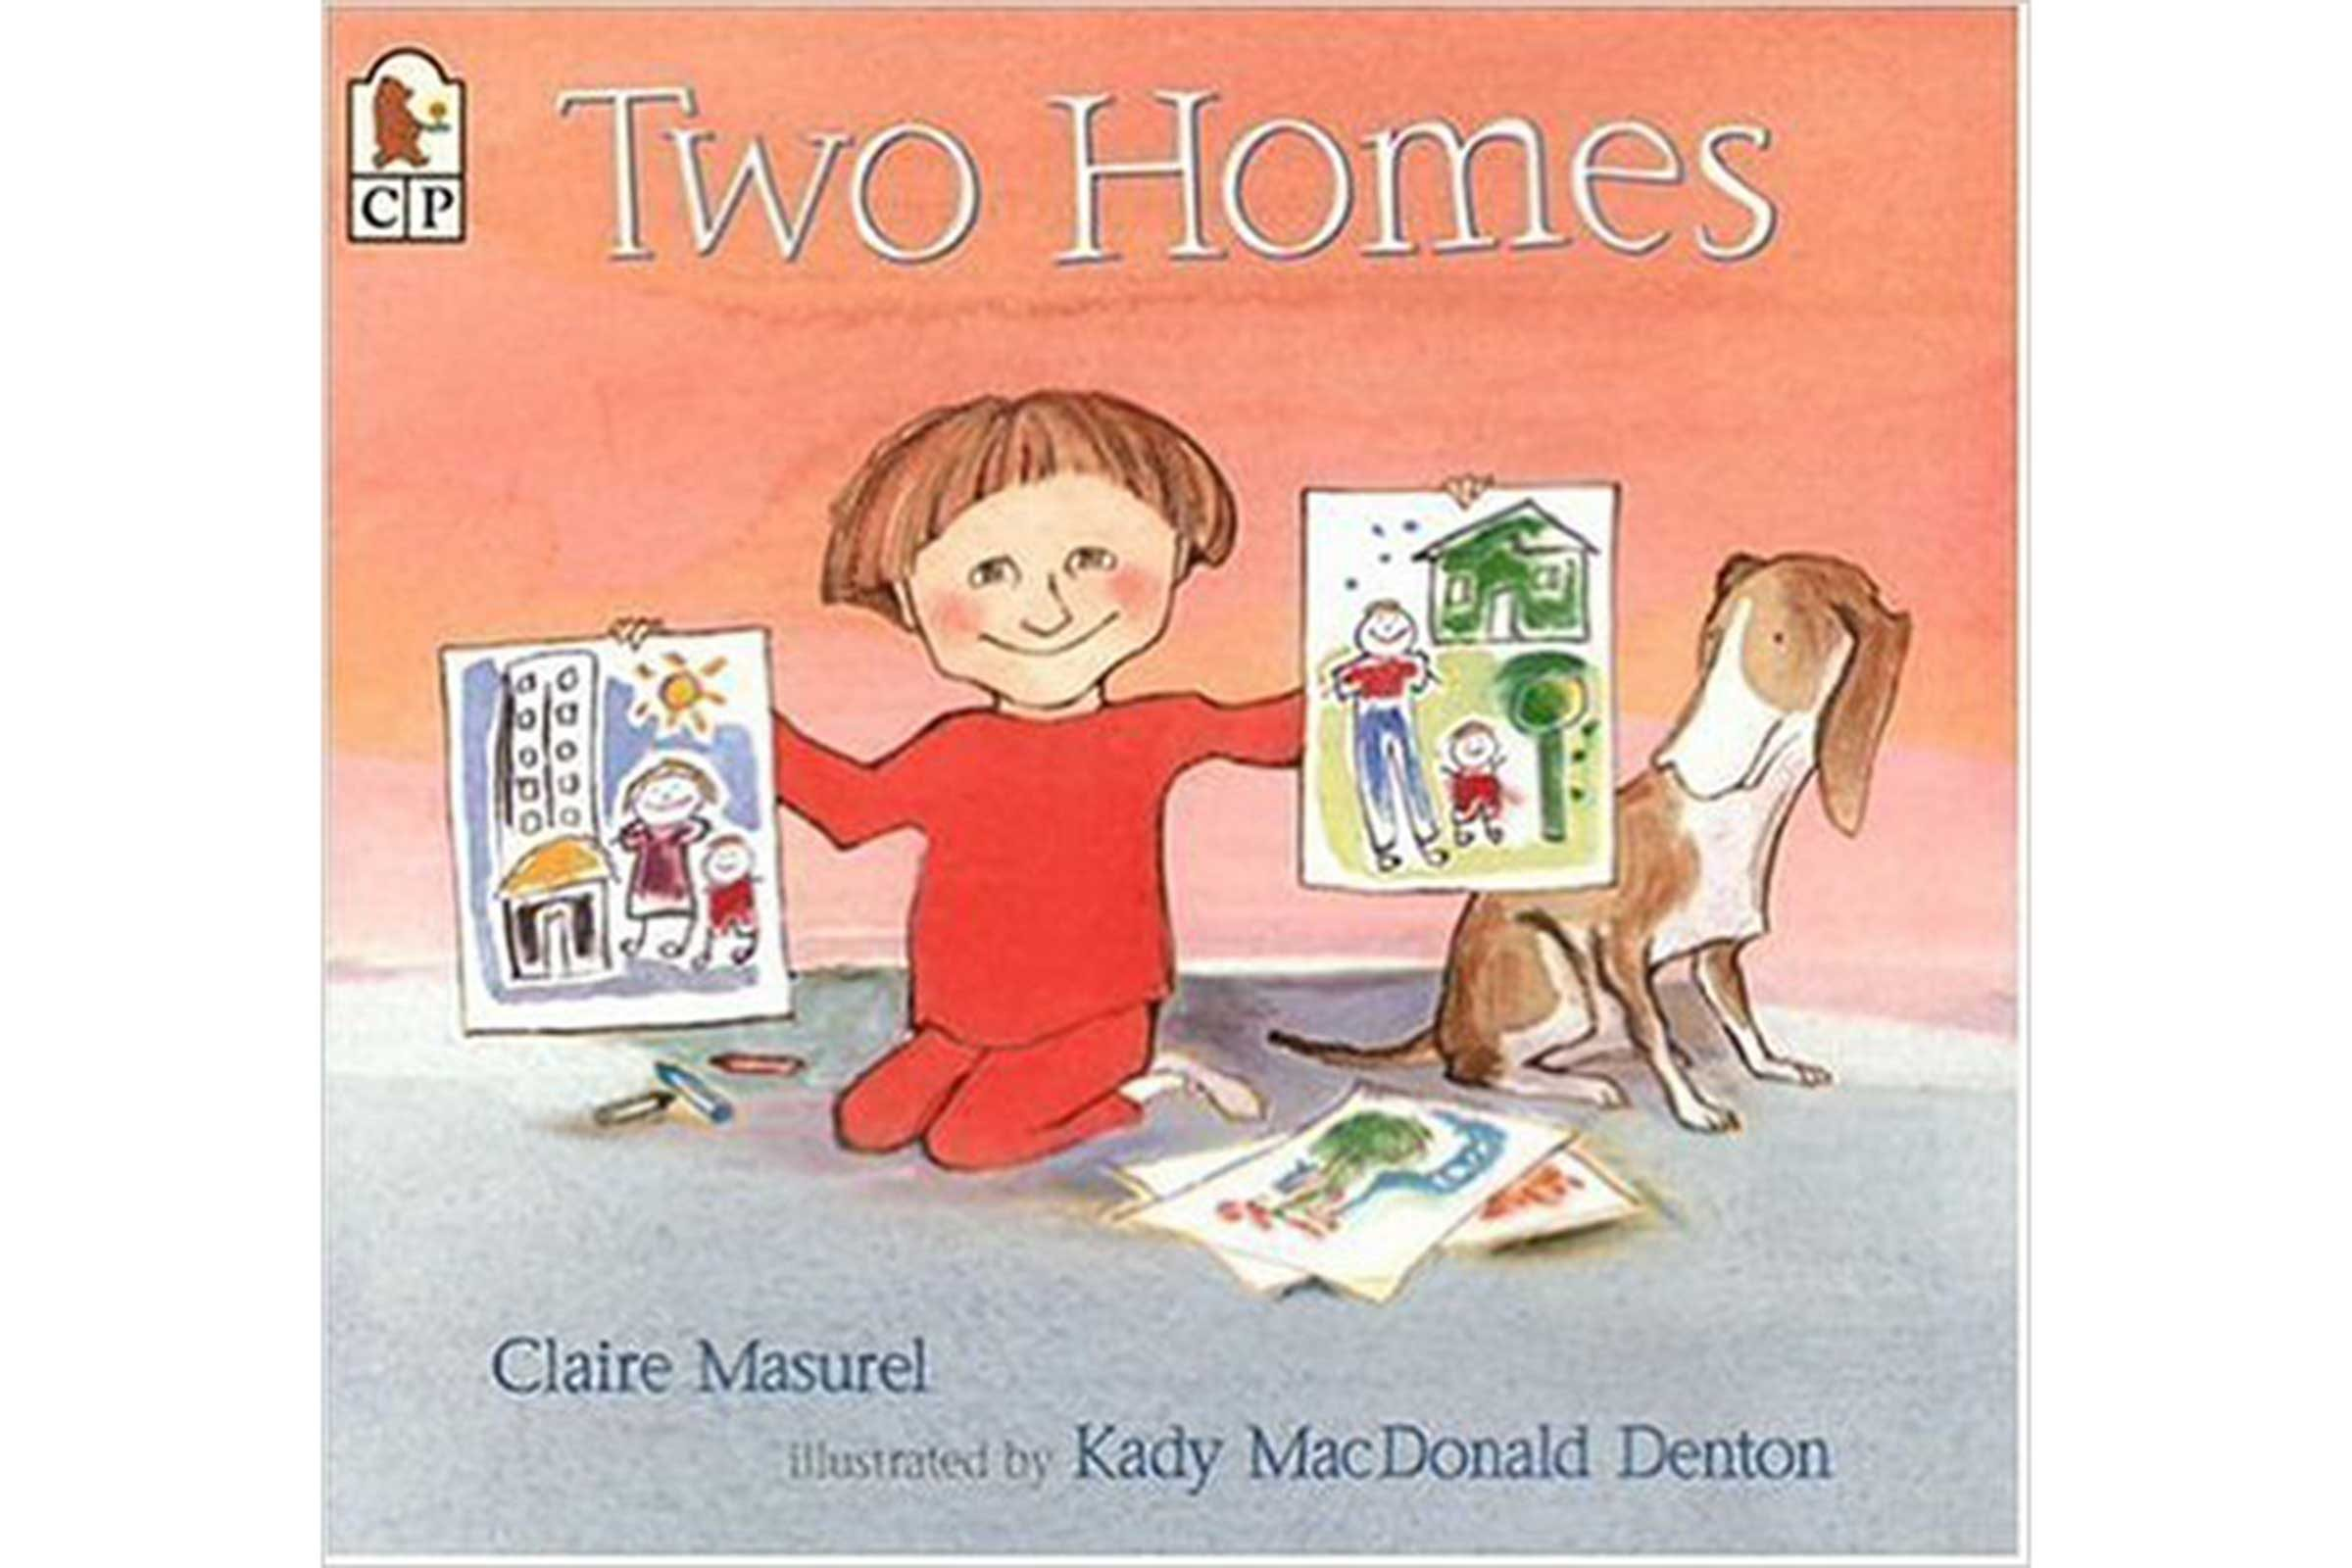 'Two Homes' by Claire Masurel